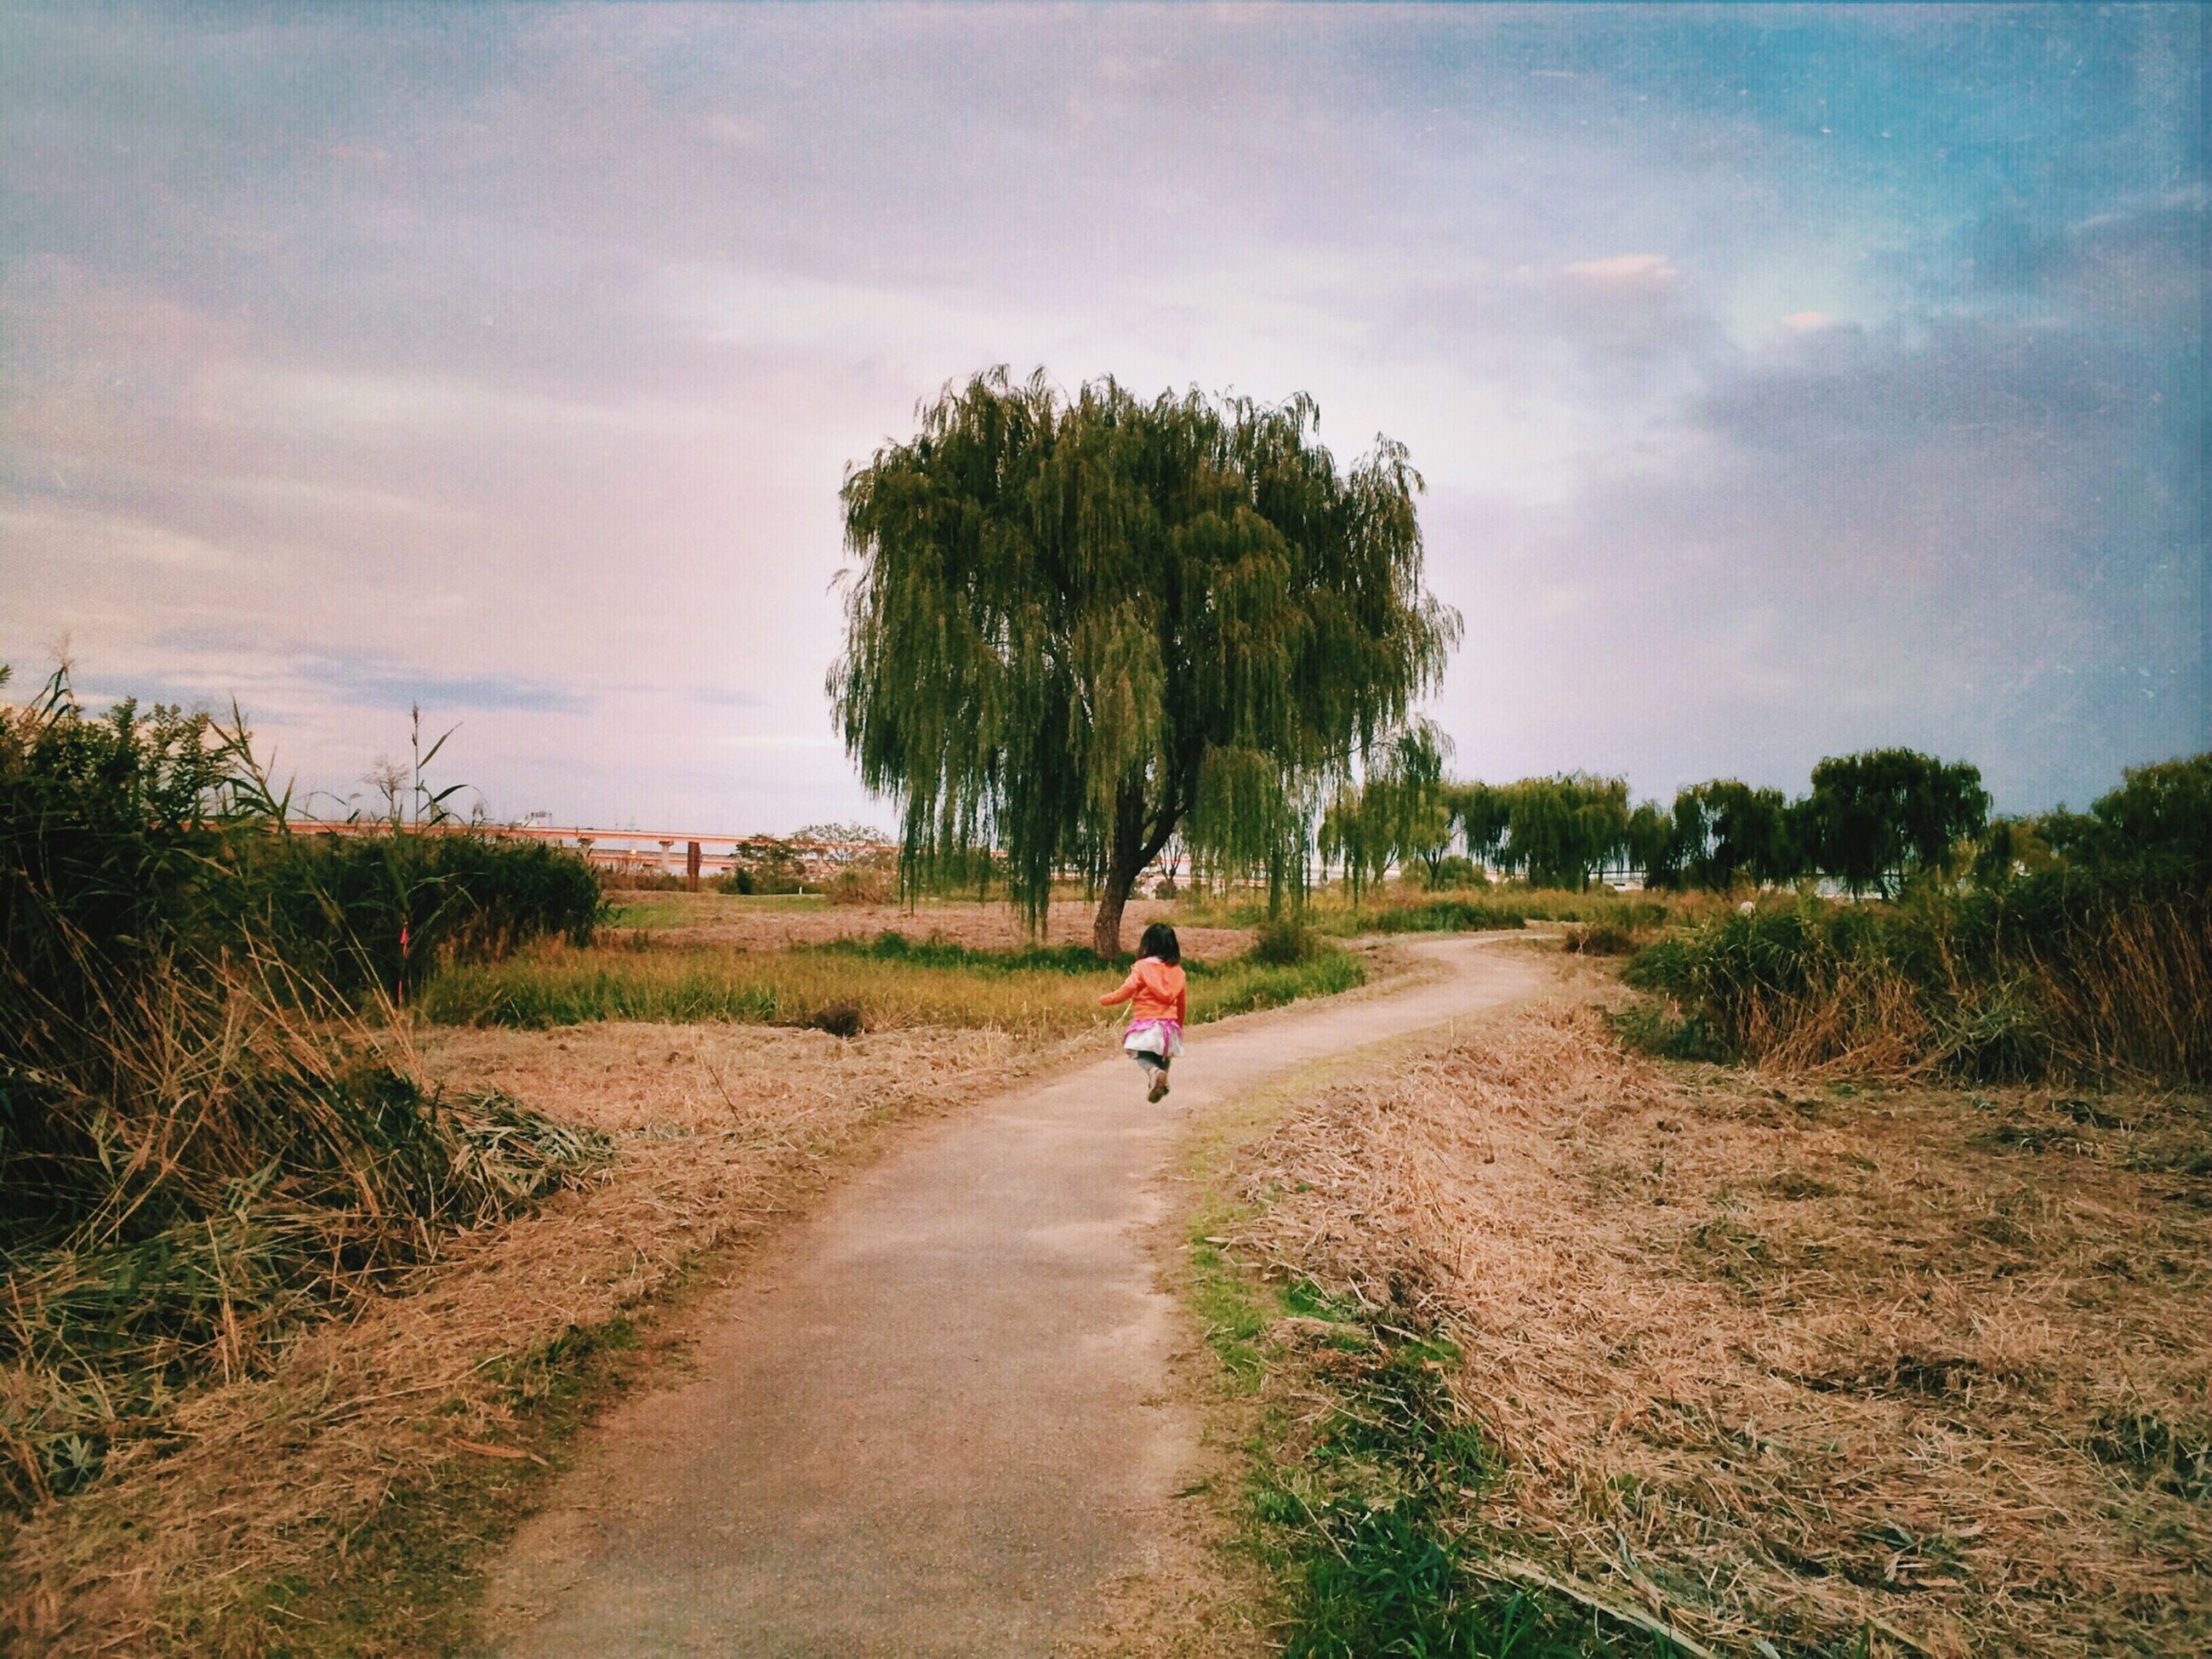 the way forward, full length, sky, tree, lifestyles, transportation, walking, leisure activity, road, dirt road, rear view, men, bicycle, grass, riding, diminishing perspective, cloud - sky, nature